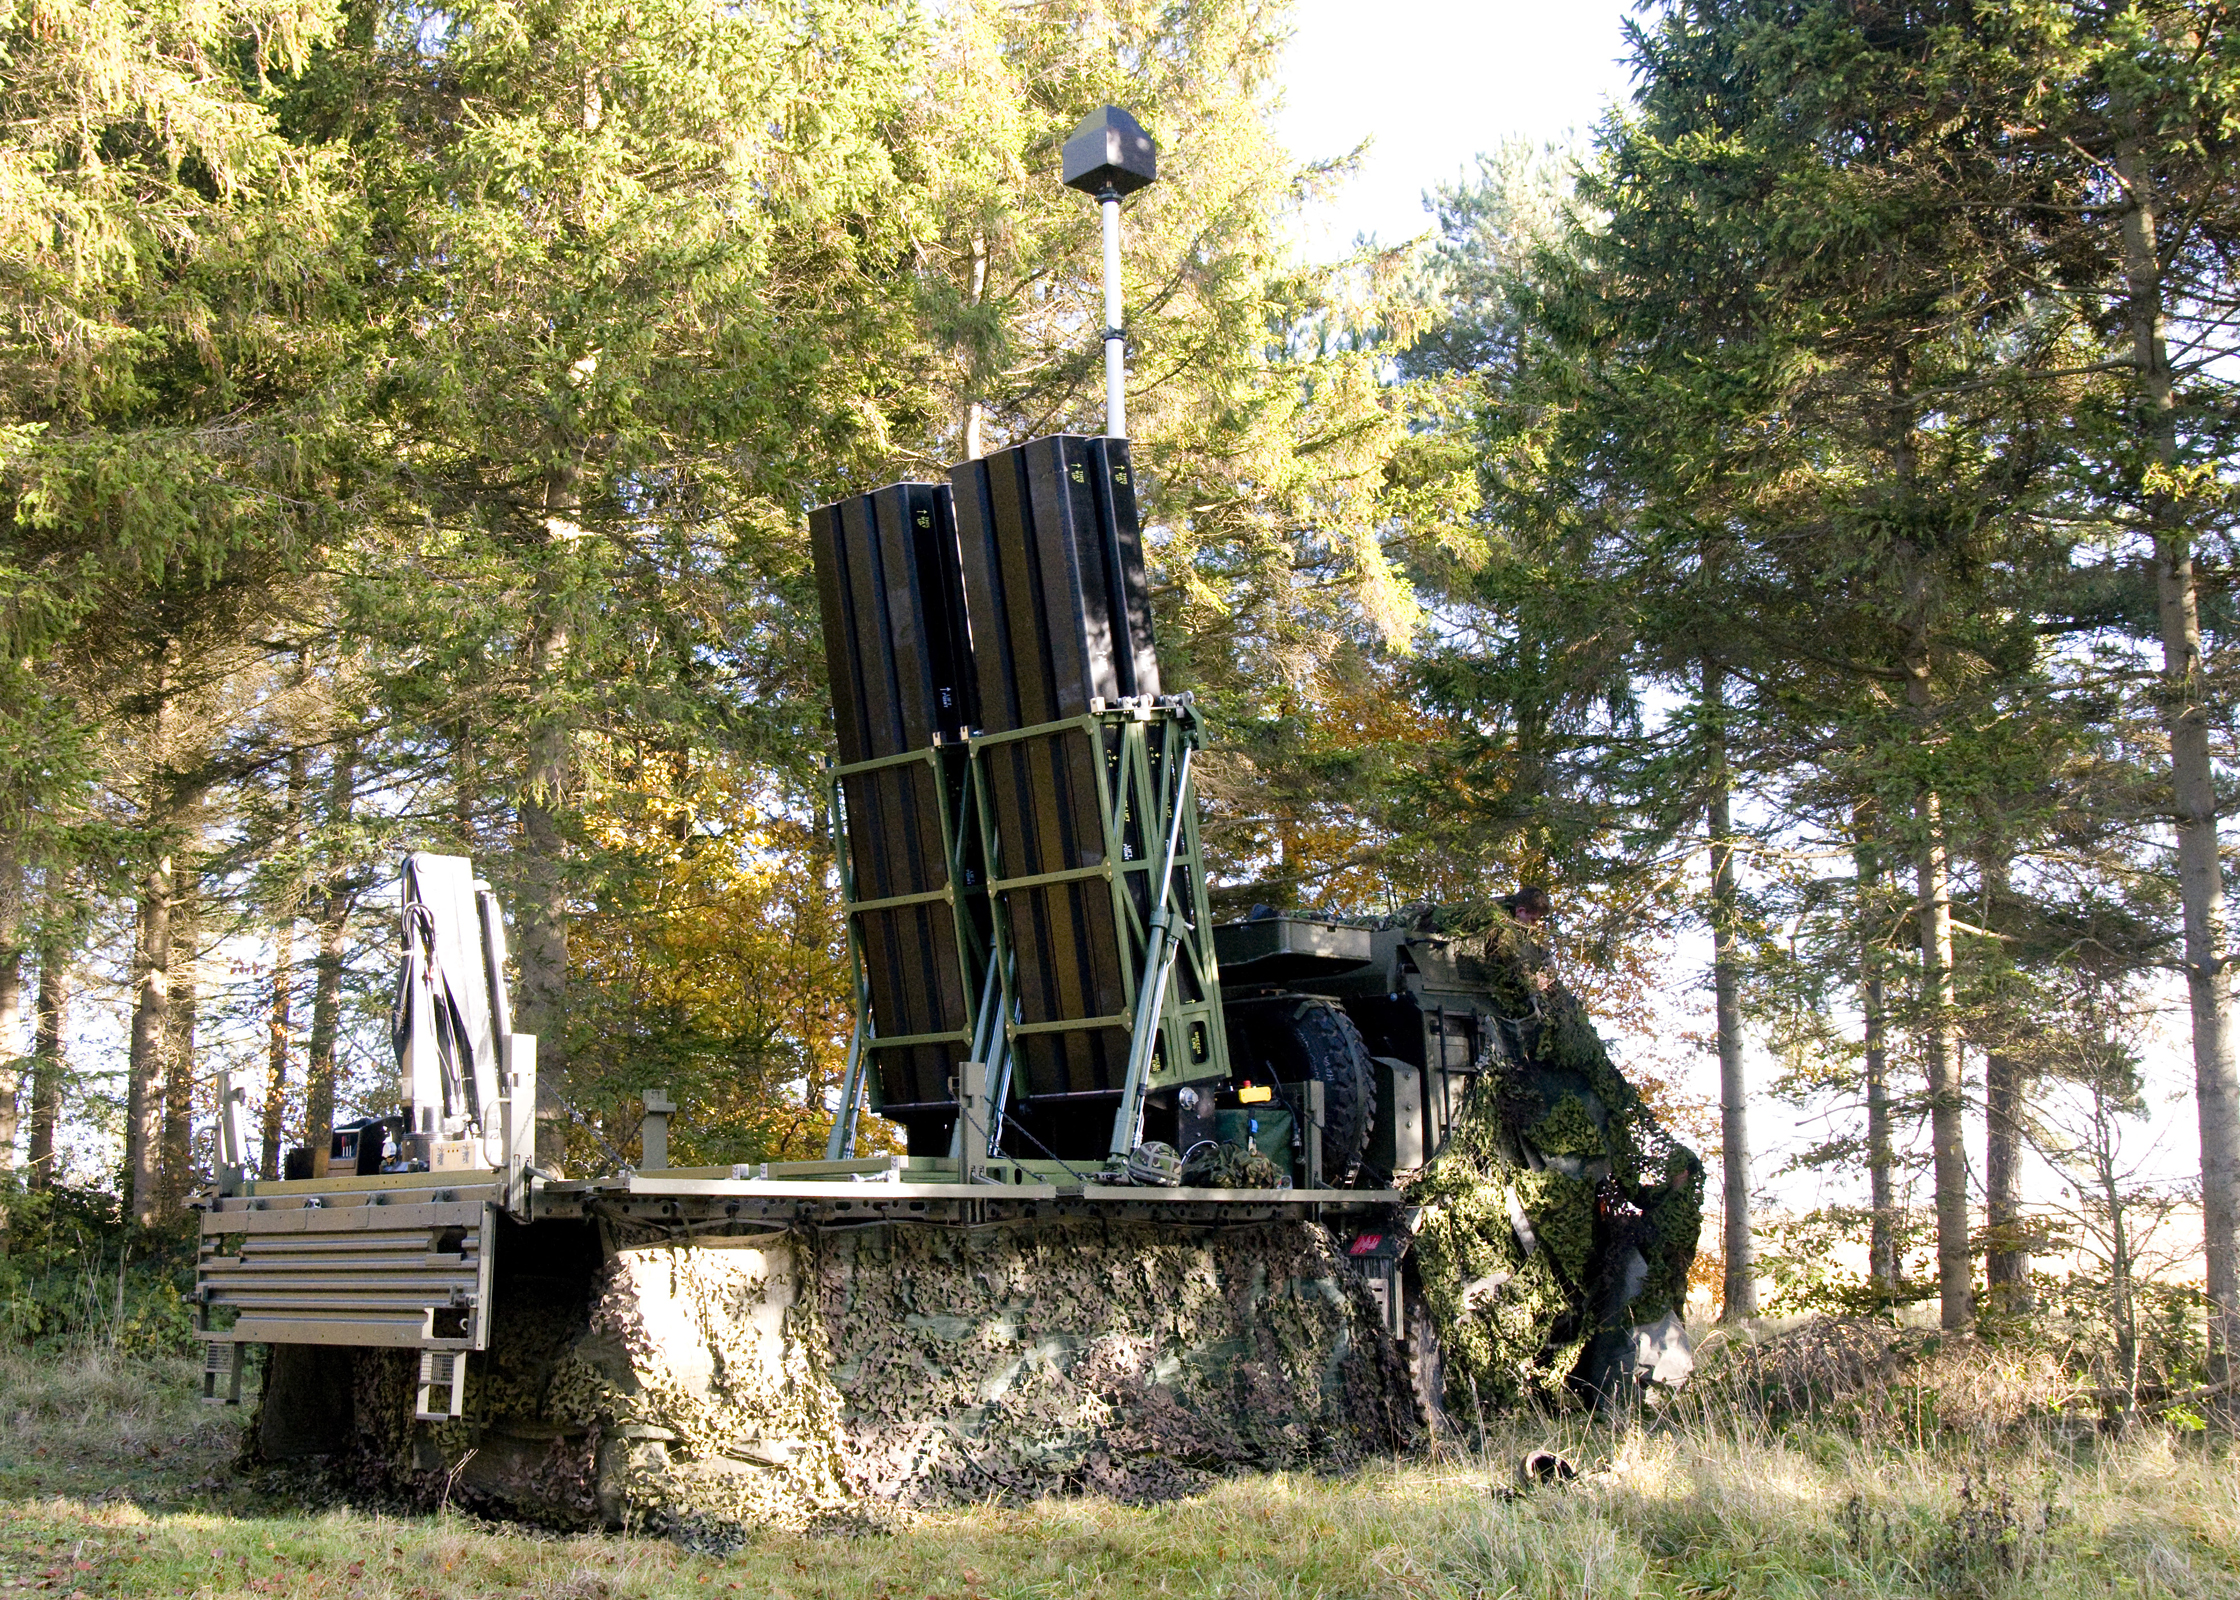 CAMM munitions land based forces